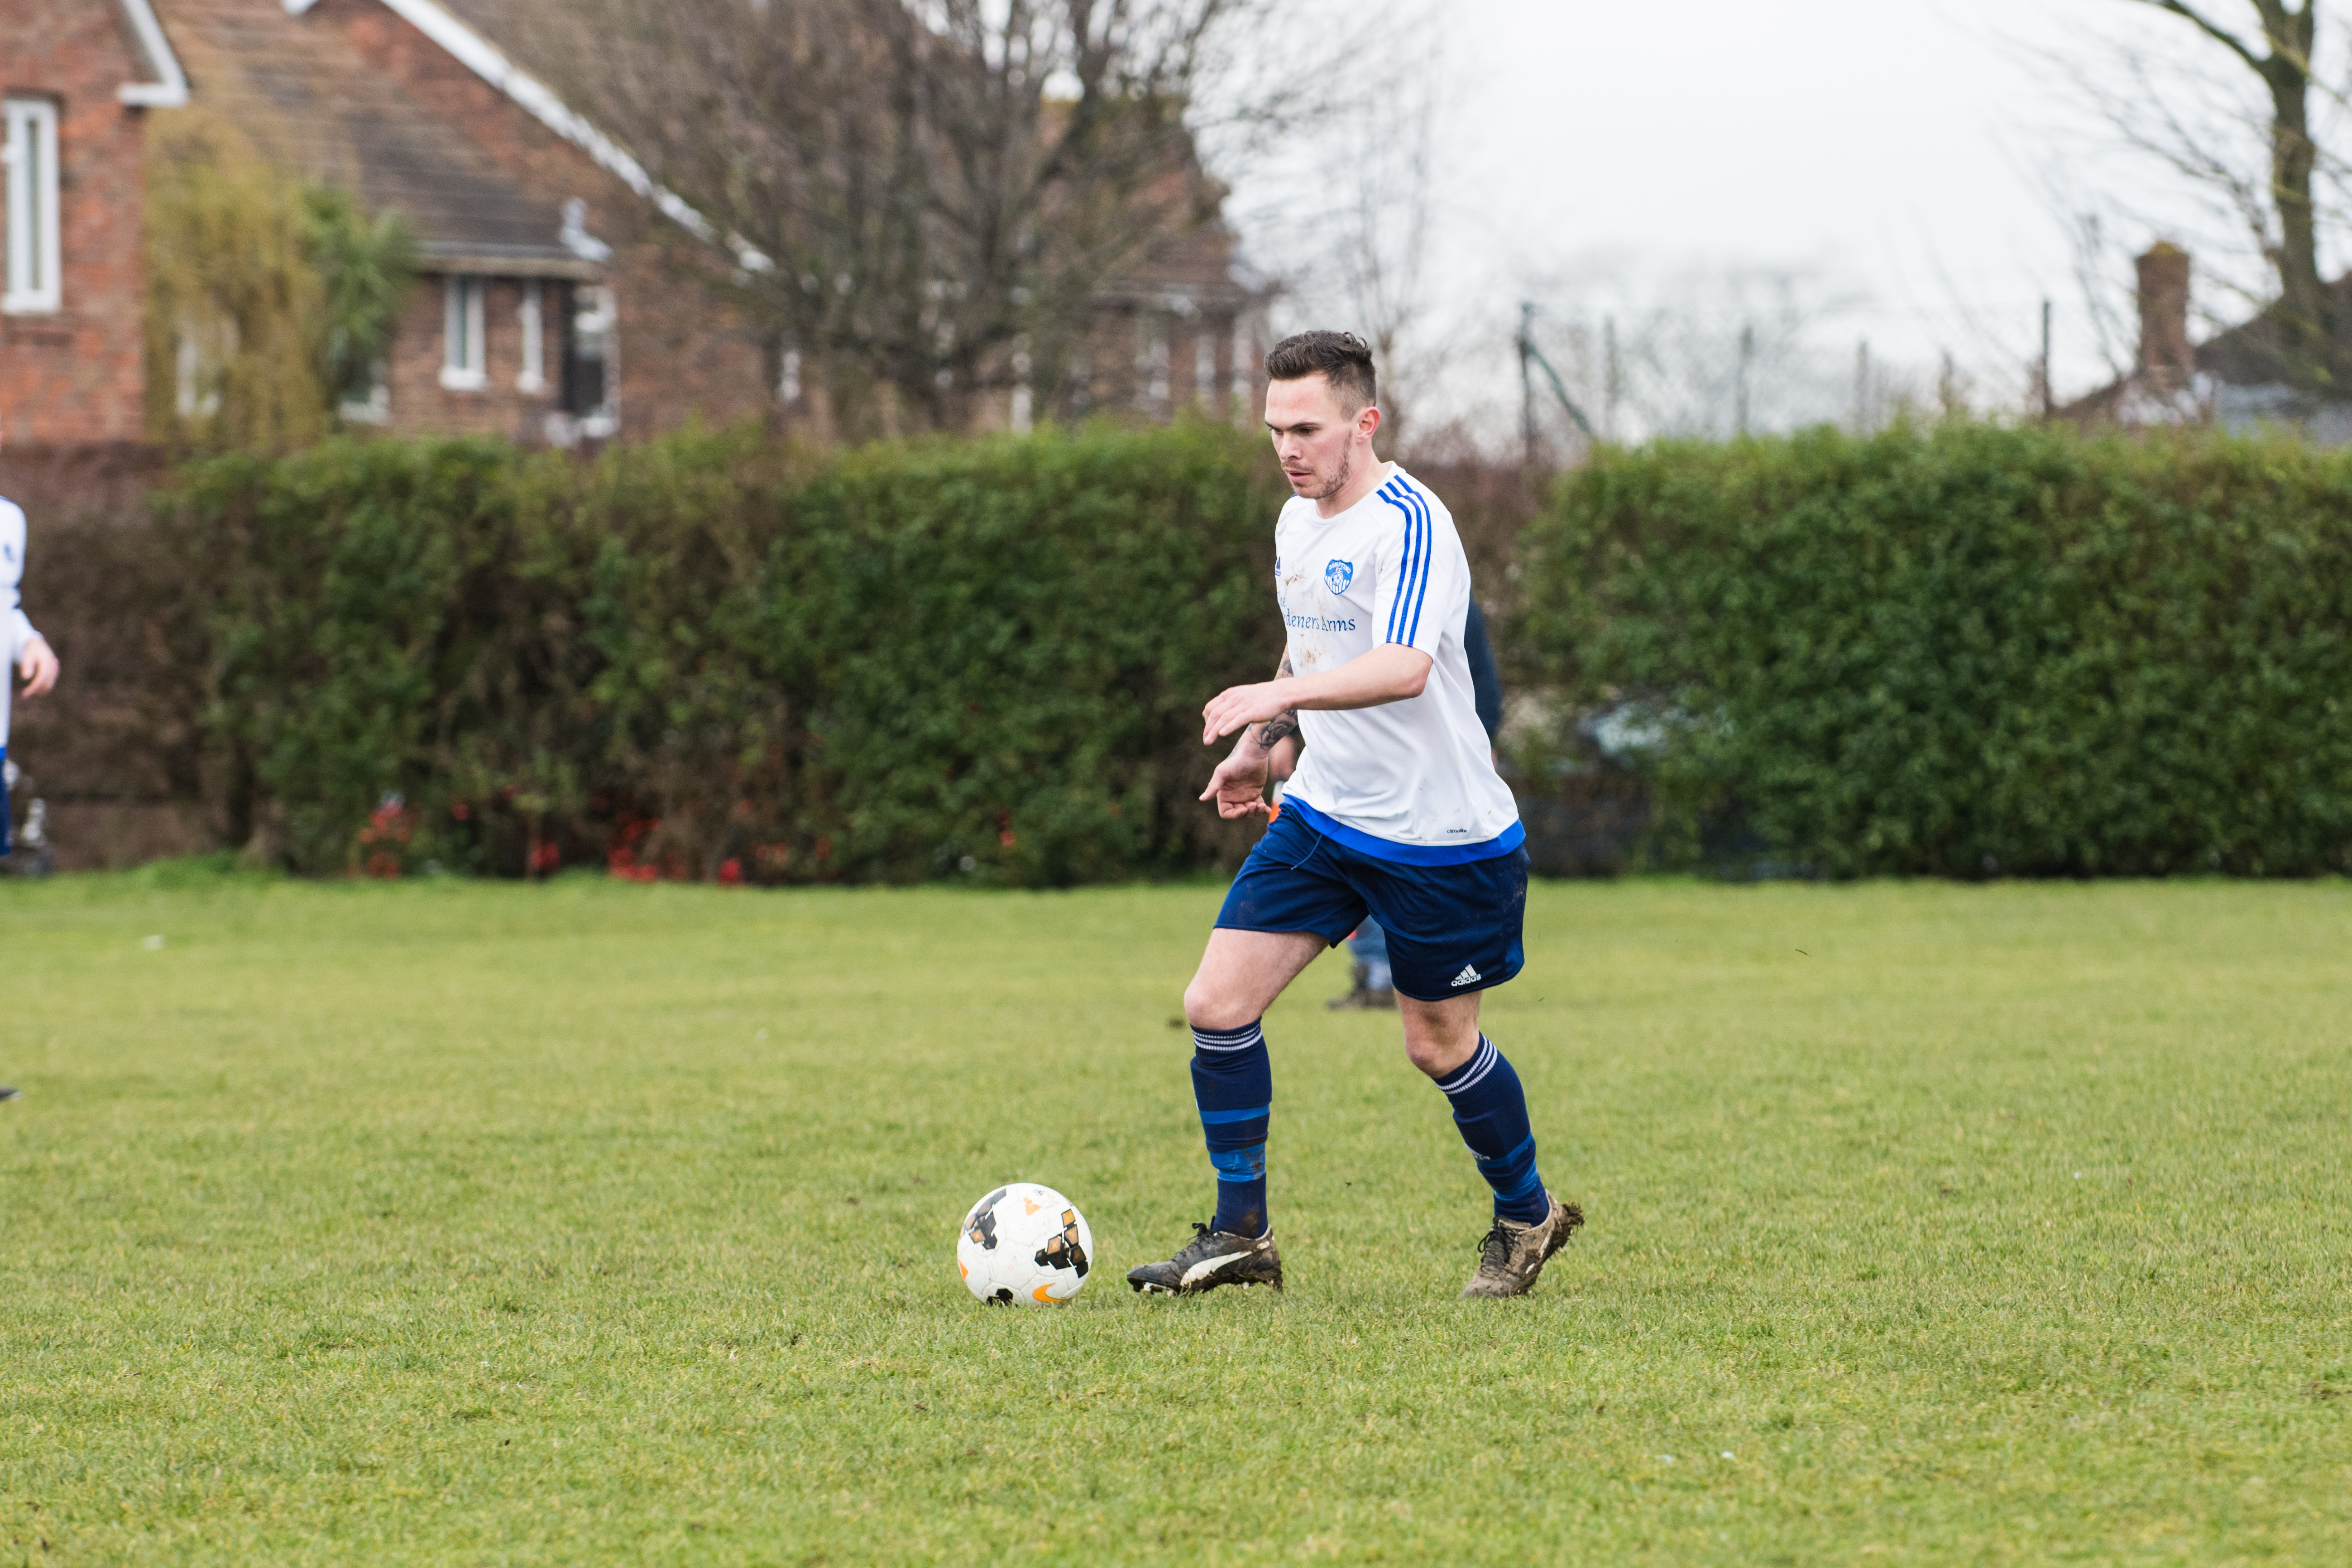 DAVID_JEFFERY FC Sporting vs Sompting 2nds 10.03.18 27